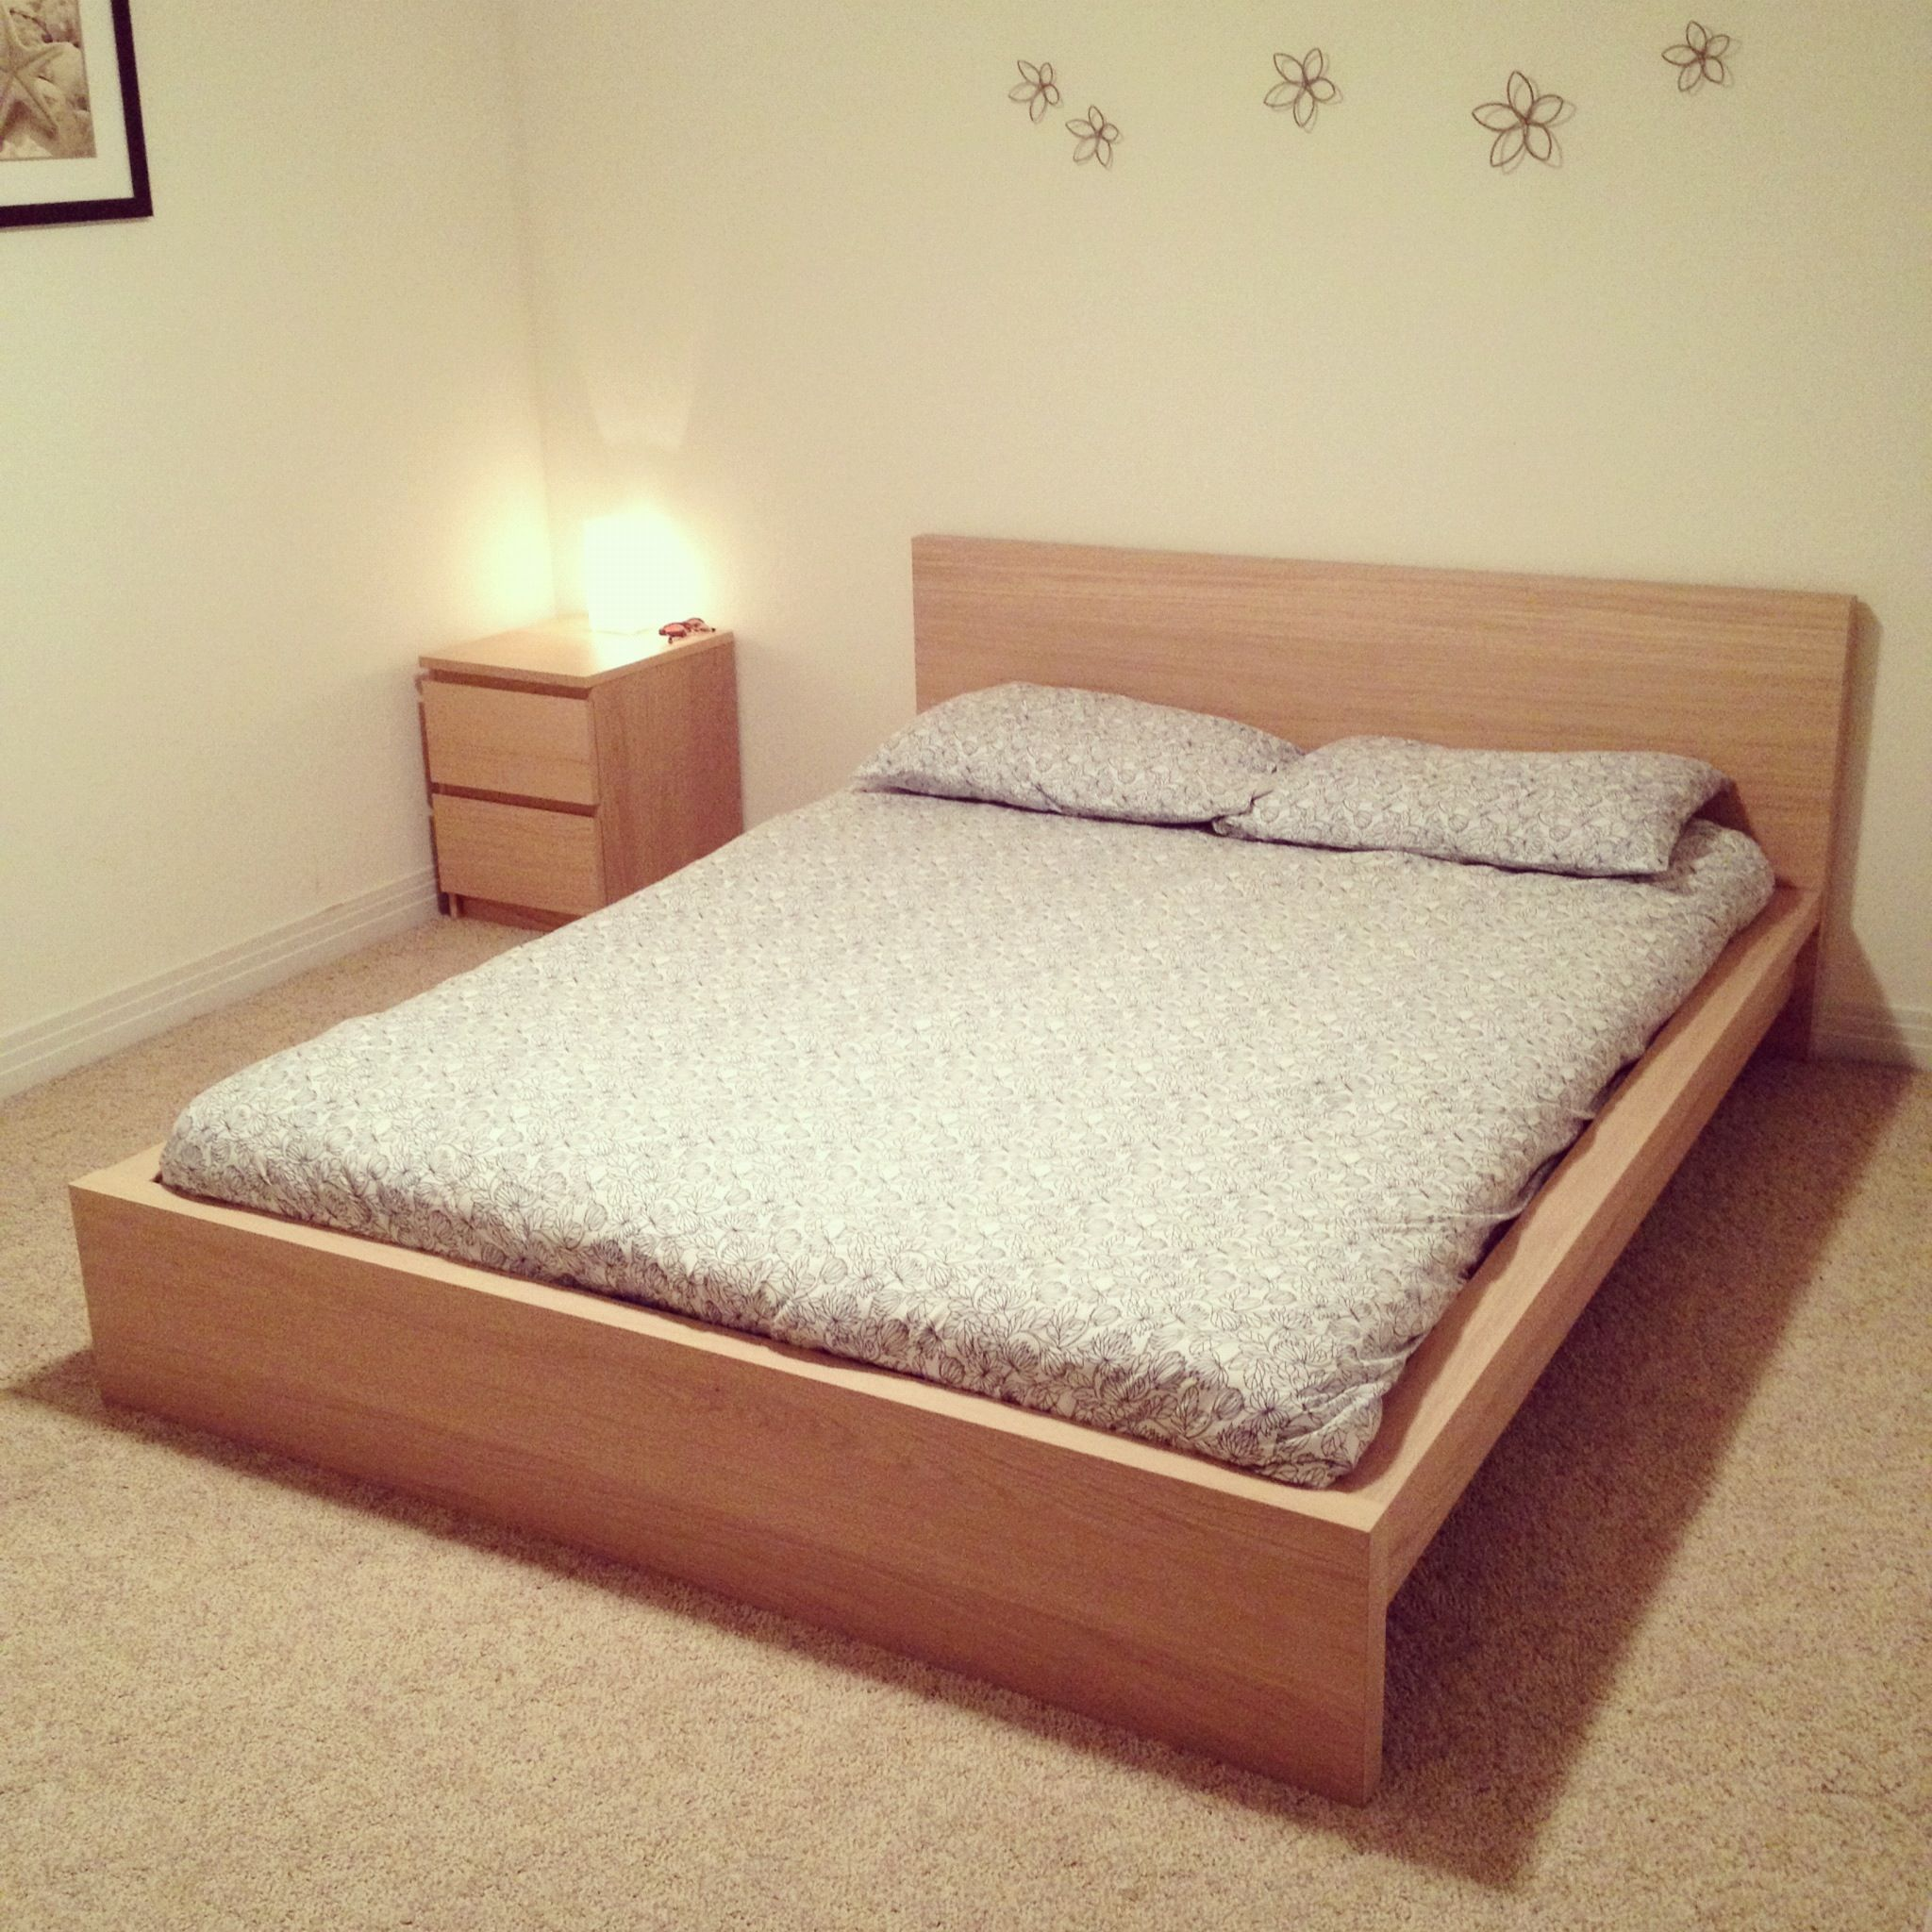 Ikea malm bed with side dresser for the home pinterest for Queen bed frame and dresser set